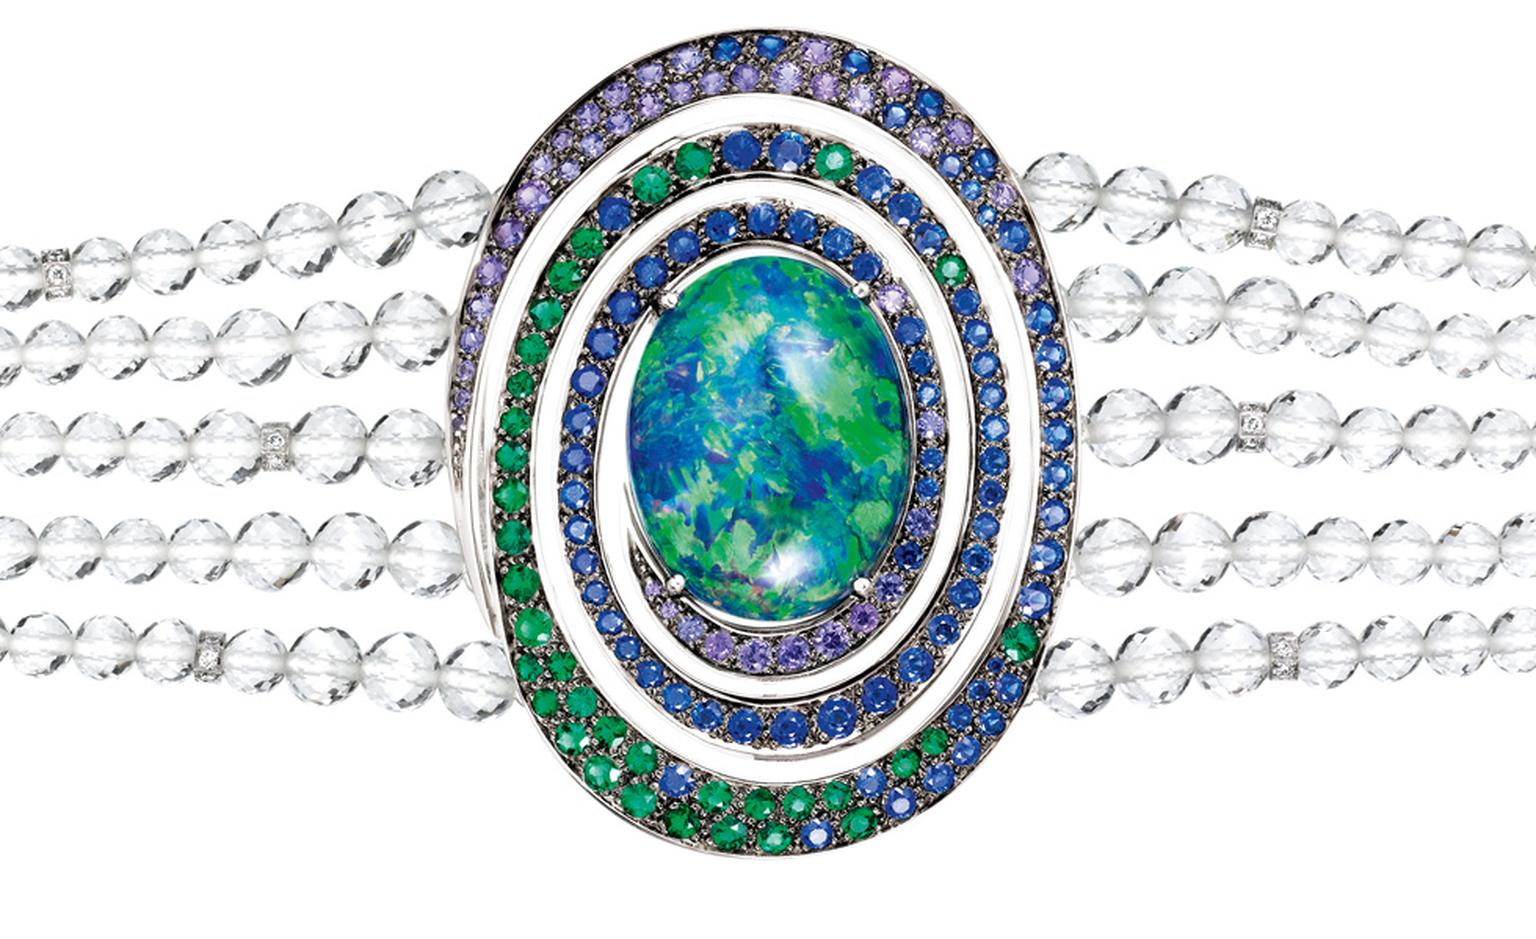 Aiguebelle  bracelet,  set  with  an  oval  opal  cabochon   and  rock  crystal  beads,  set  with  emeralds,  blue  and   purple  sapphires  and  diamonds,  on  white  gold. POA